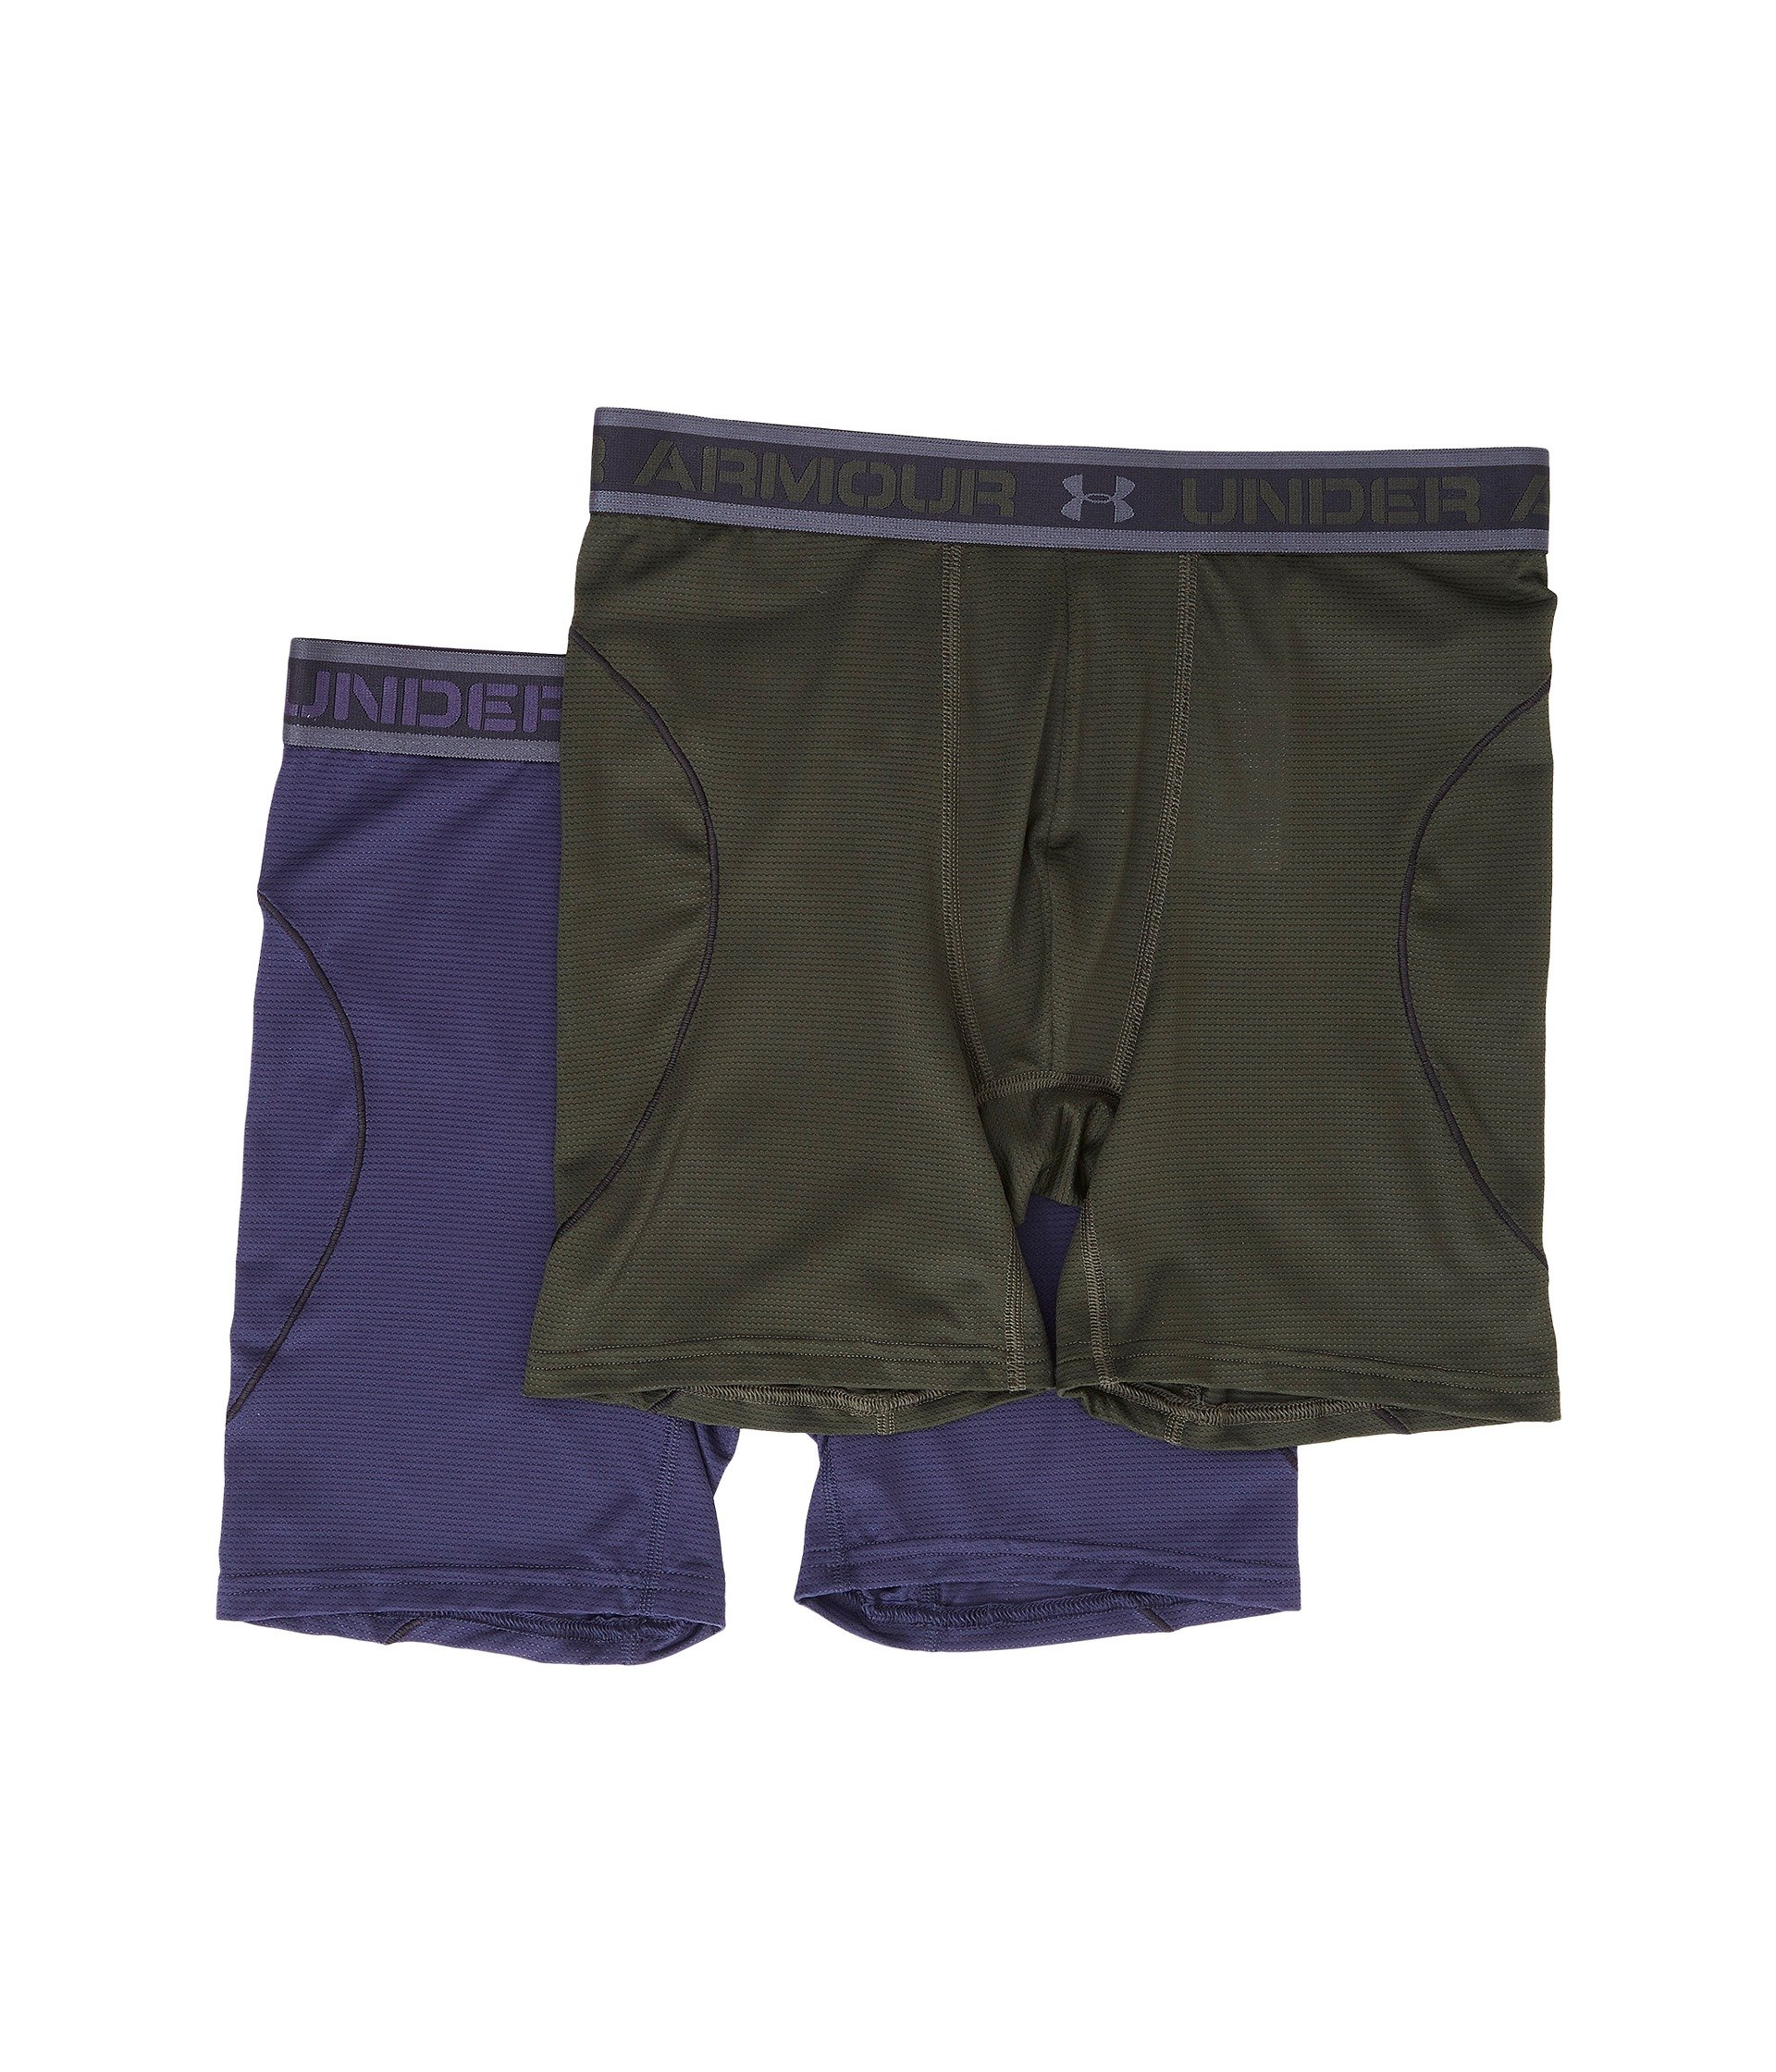 "Ropa Interior para Hombre Under Armour Iso-Chill 6"" 2-Pack  + Under Armour en VeoyCompro.net"